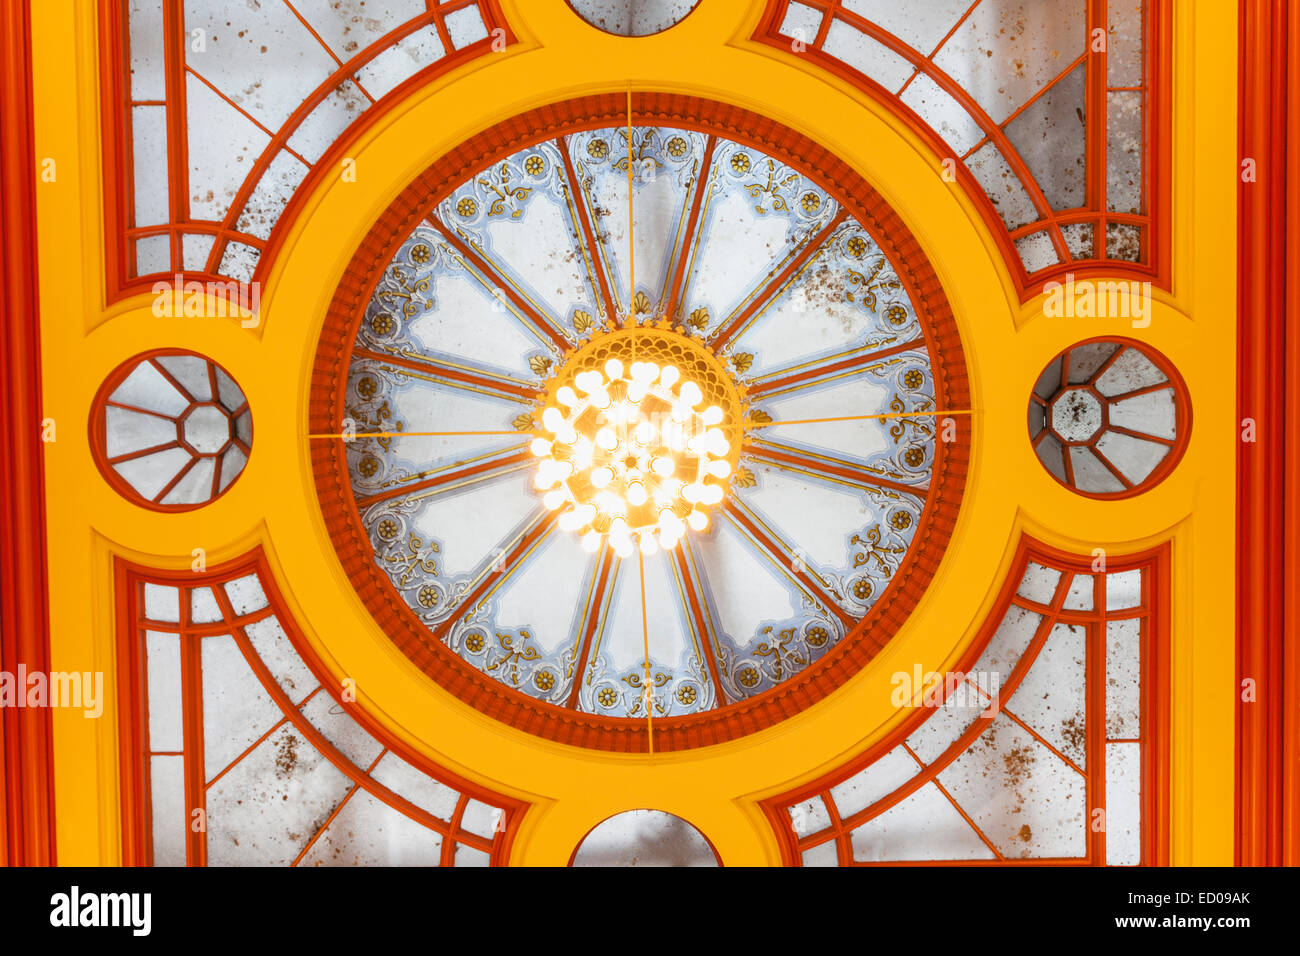 England, Yorkshire, Leeds, Leeds Town Hall, Ceiling of The Brodrick Suite - Stock Image